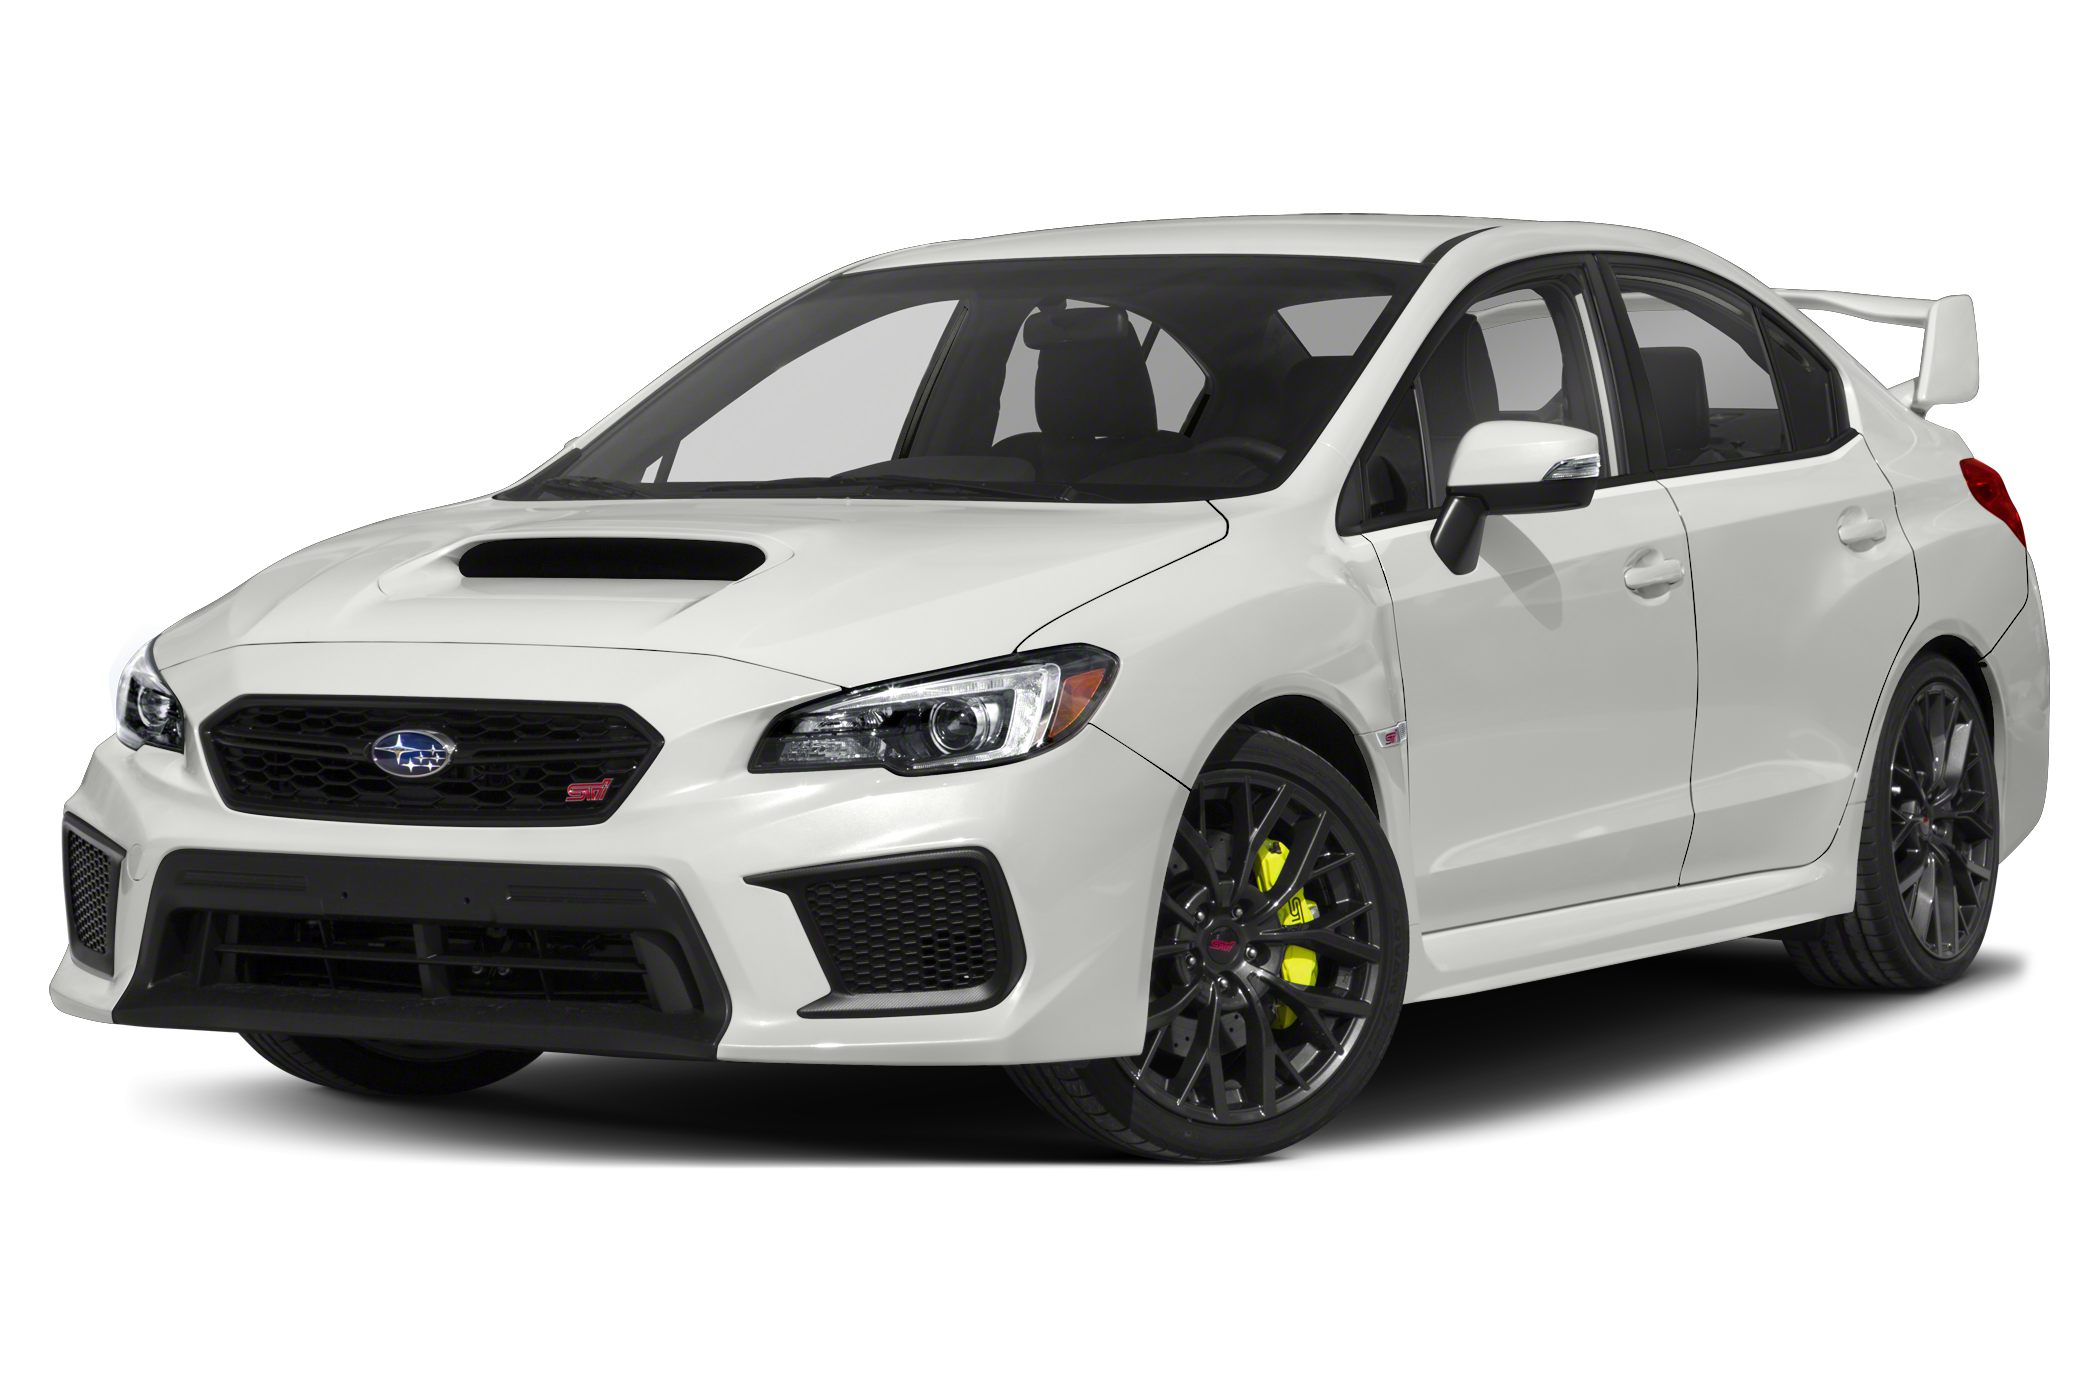 Subaru Wrx Sti Prices Reviews And New Model Information